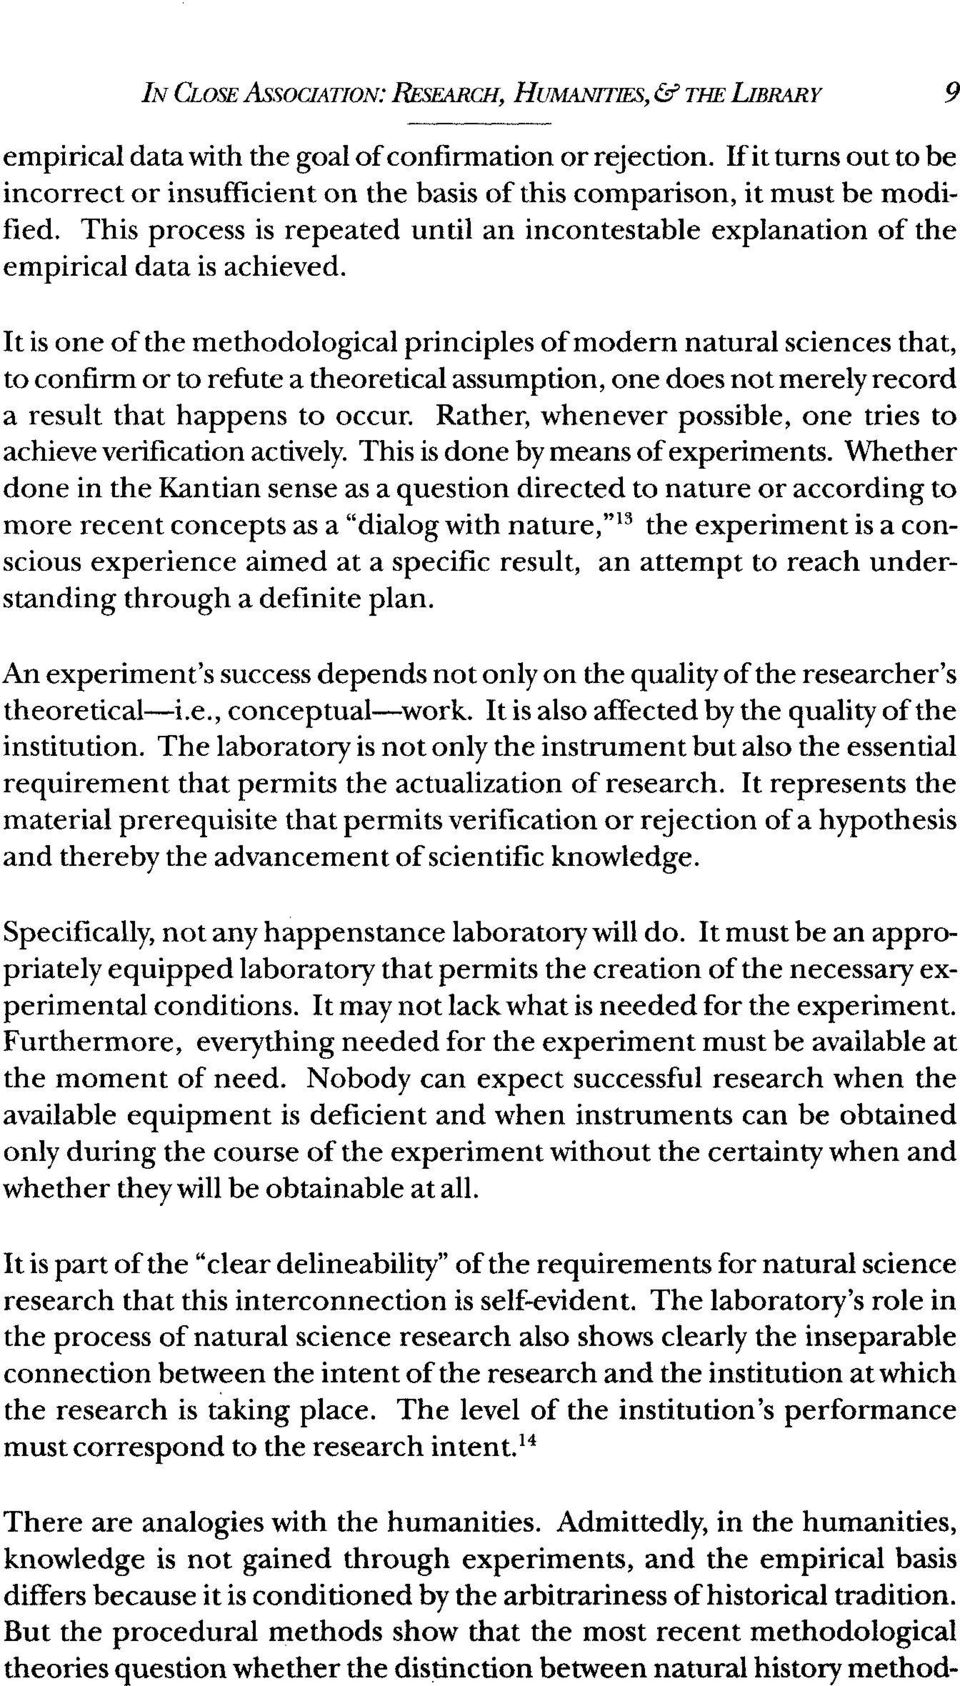 It is one of the methodological principles of modern natural sciences that, to confirm or to refute a theoretical assumption, one does not merely record a result that happens to occur.